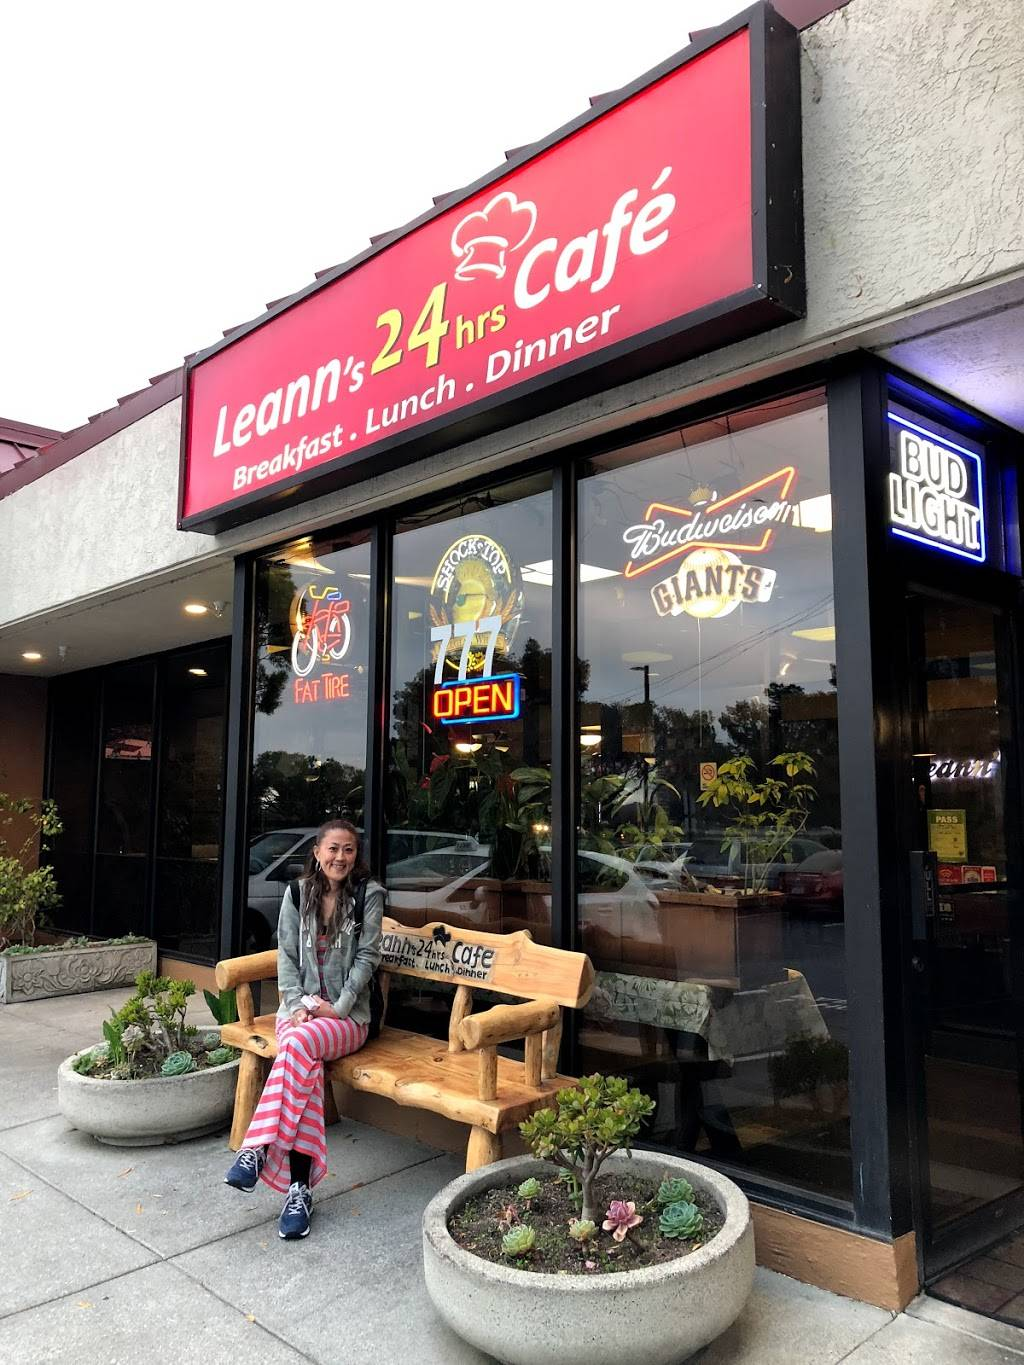 Leann Cafe   cafe   777 Airport Blvd, Burlingame, CA 94010, USA   6503428248 OR +1 650-342-8248